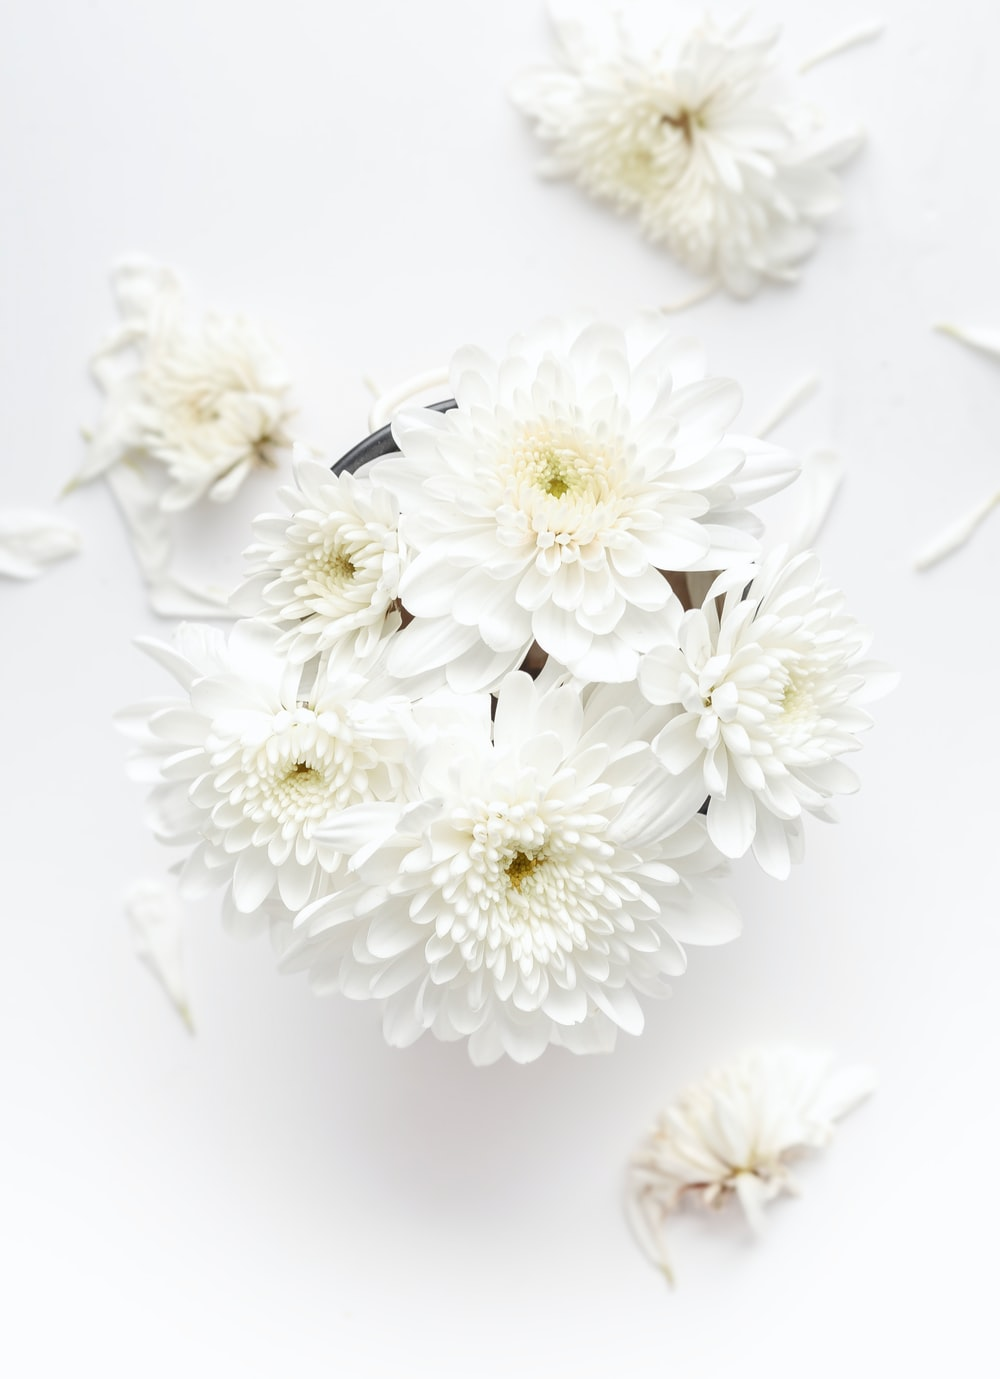 A top view of white dahlias on a white surface